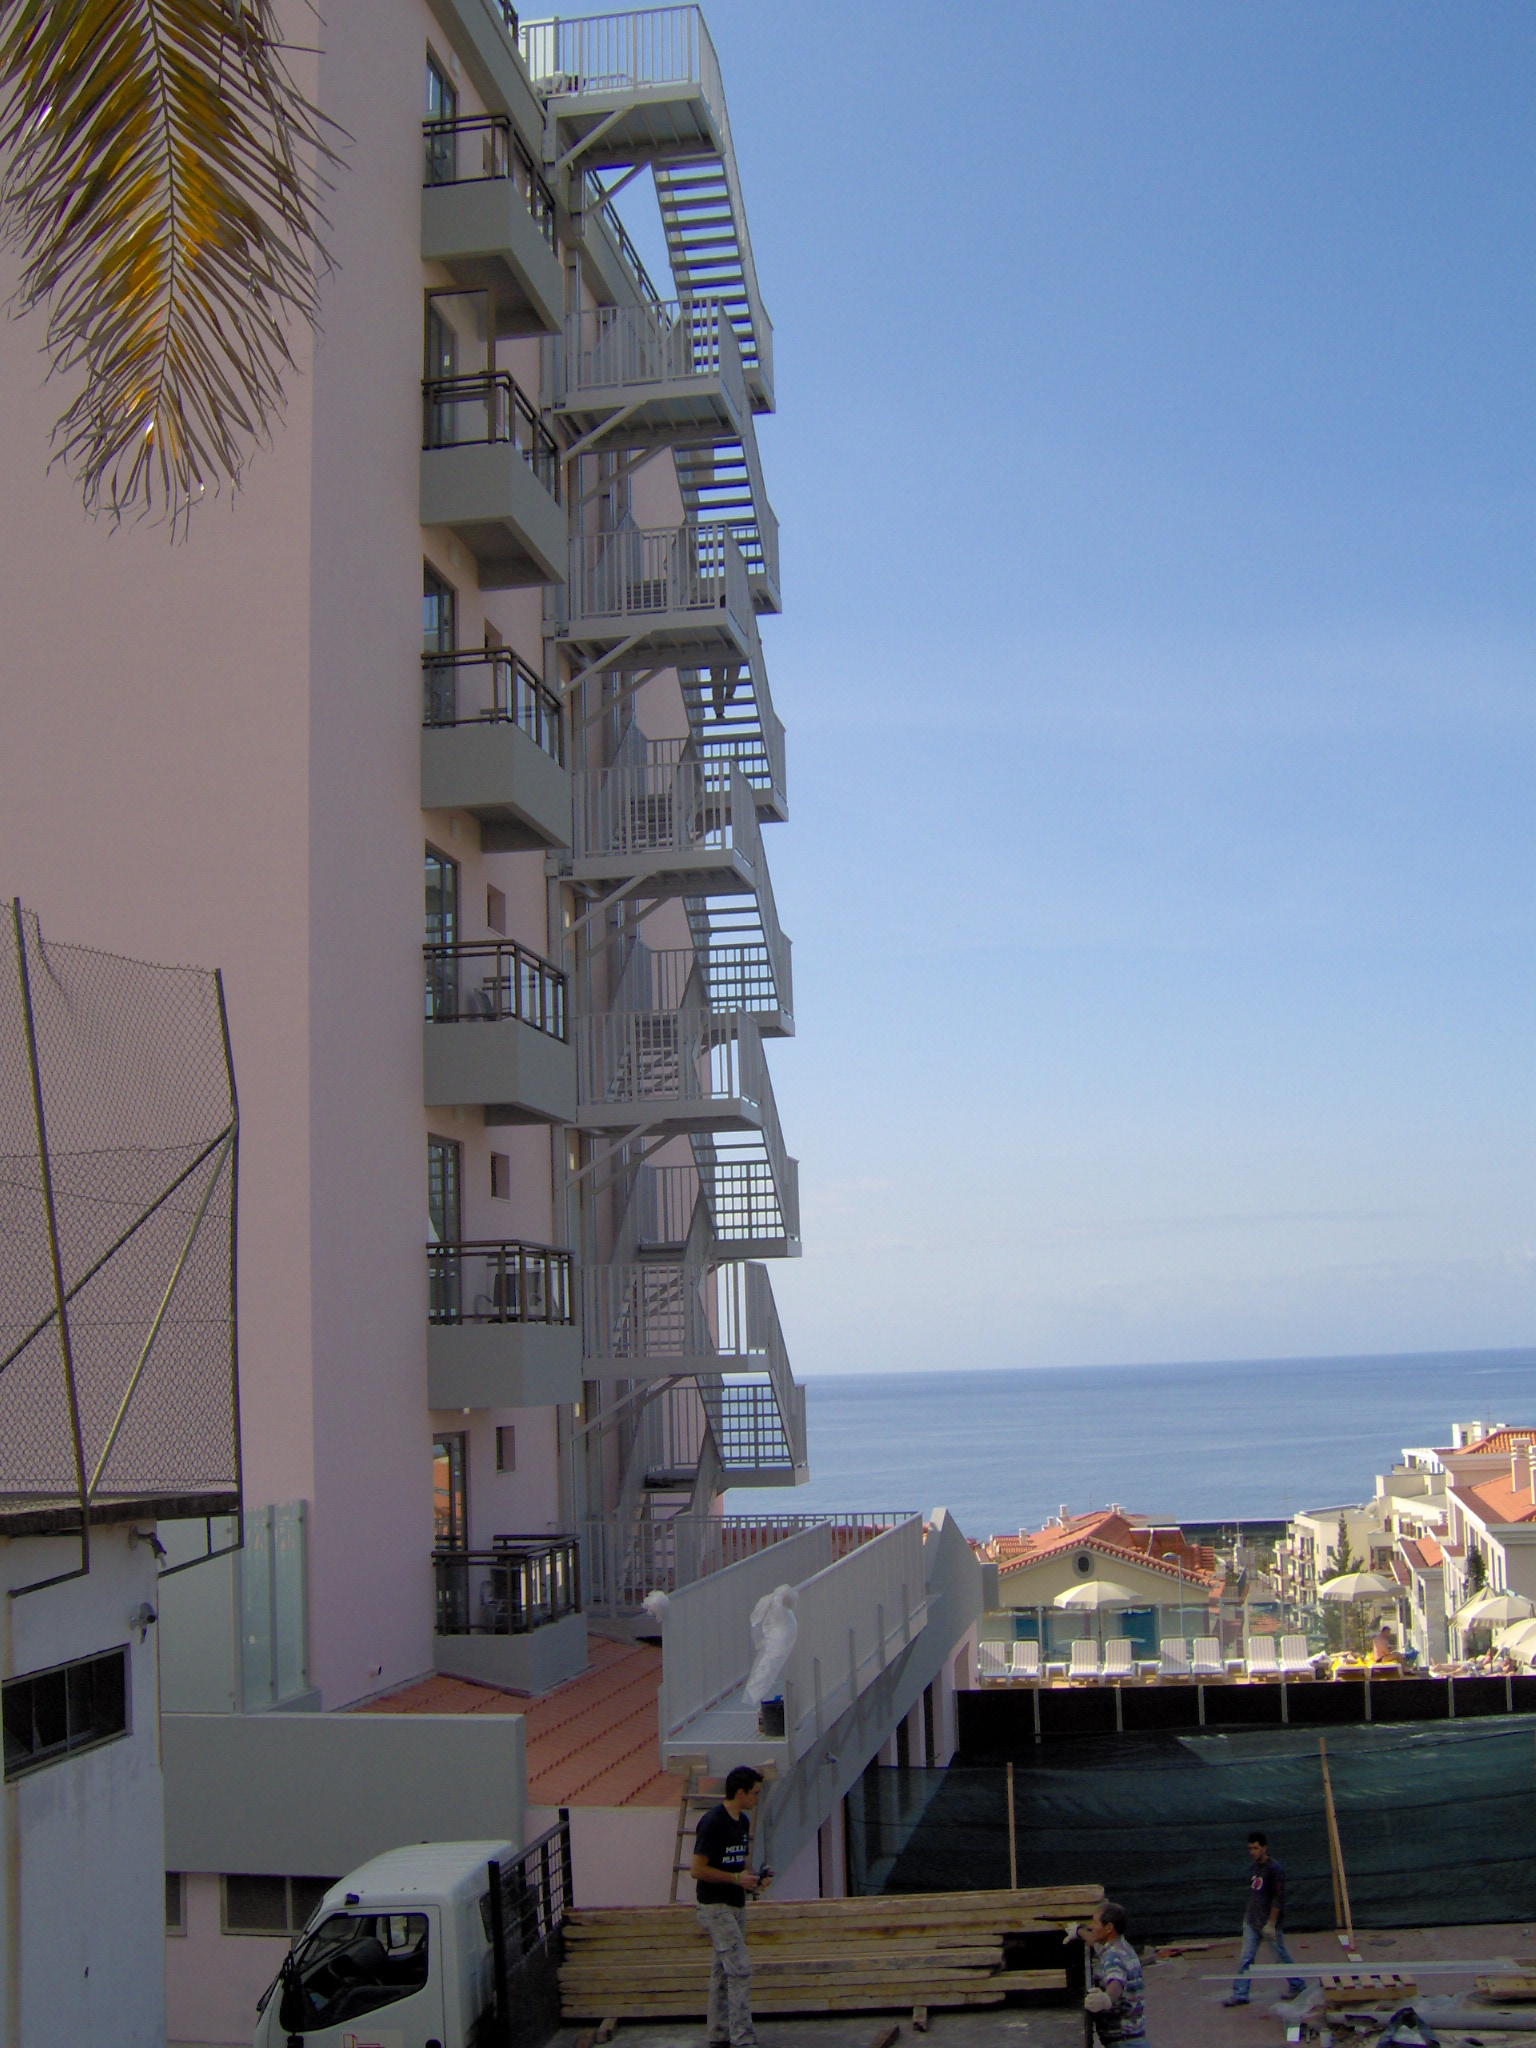 Fire escape stairs along the sea